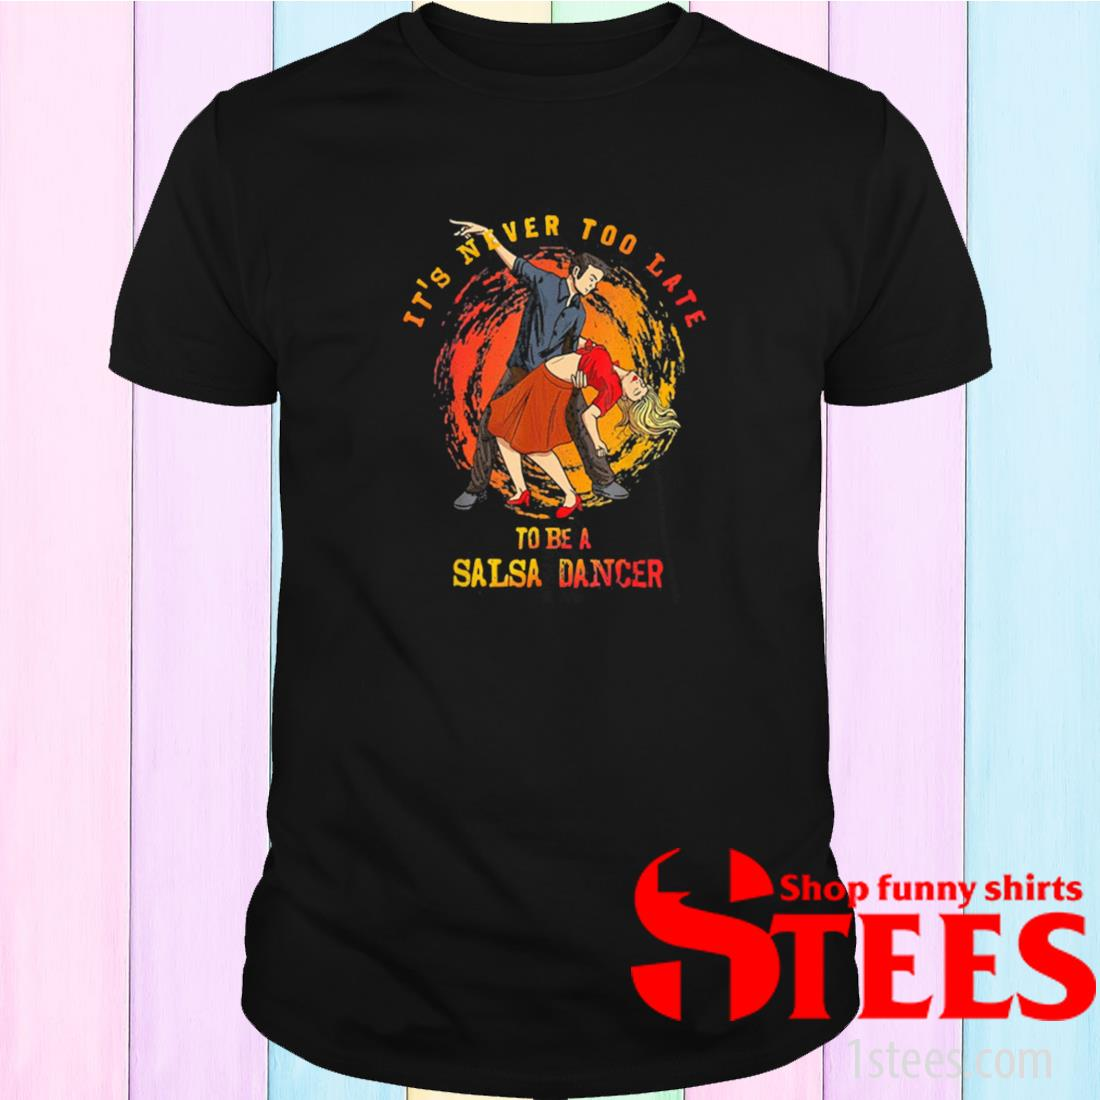 It's Never Too Late To Be A Salsa Dancer Shirt